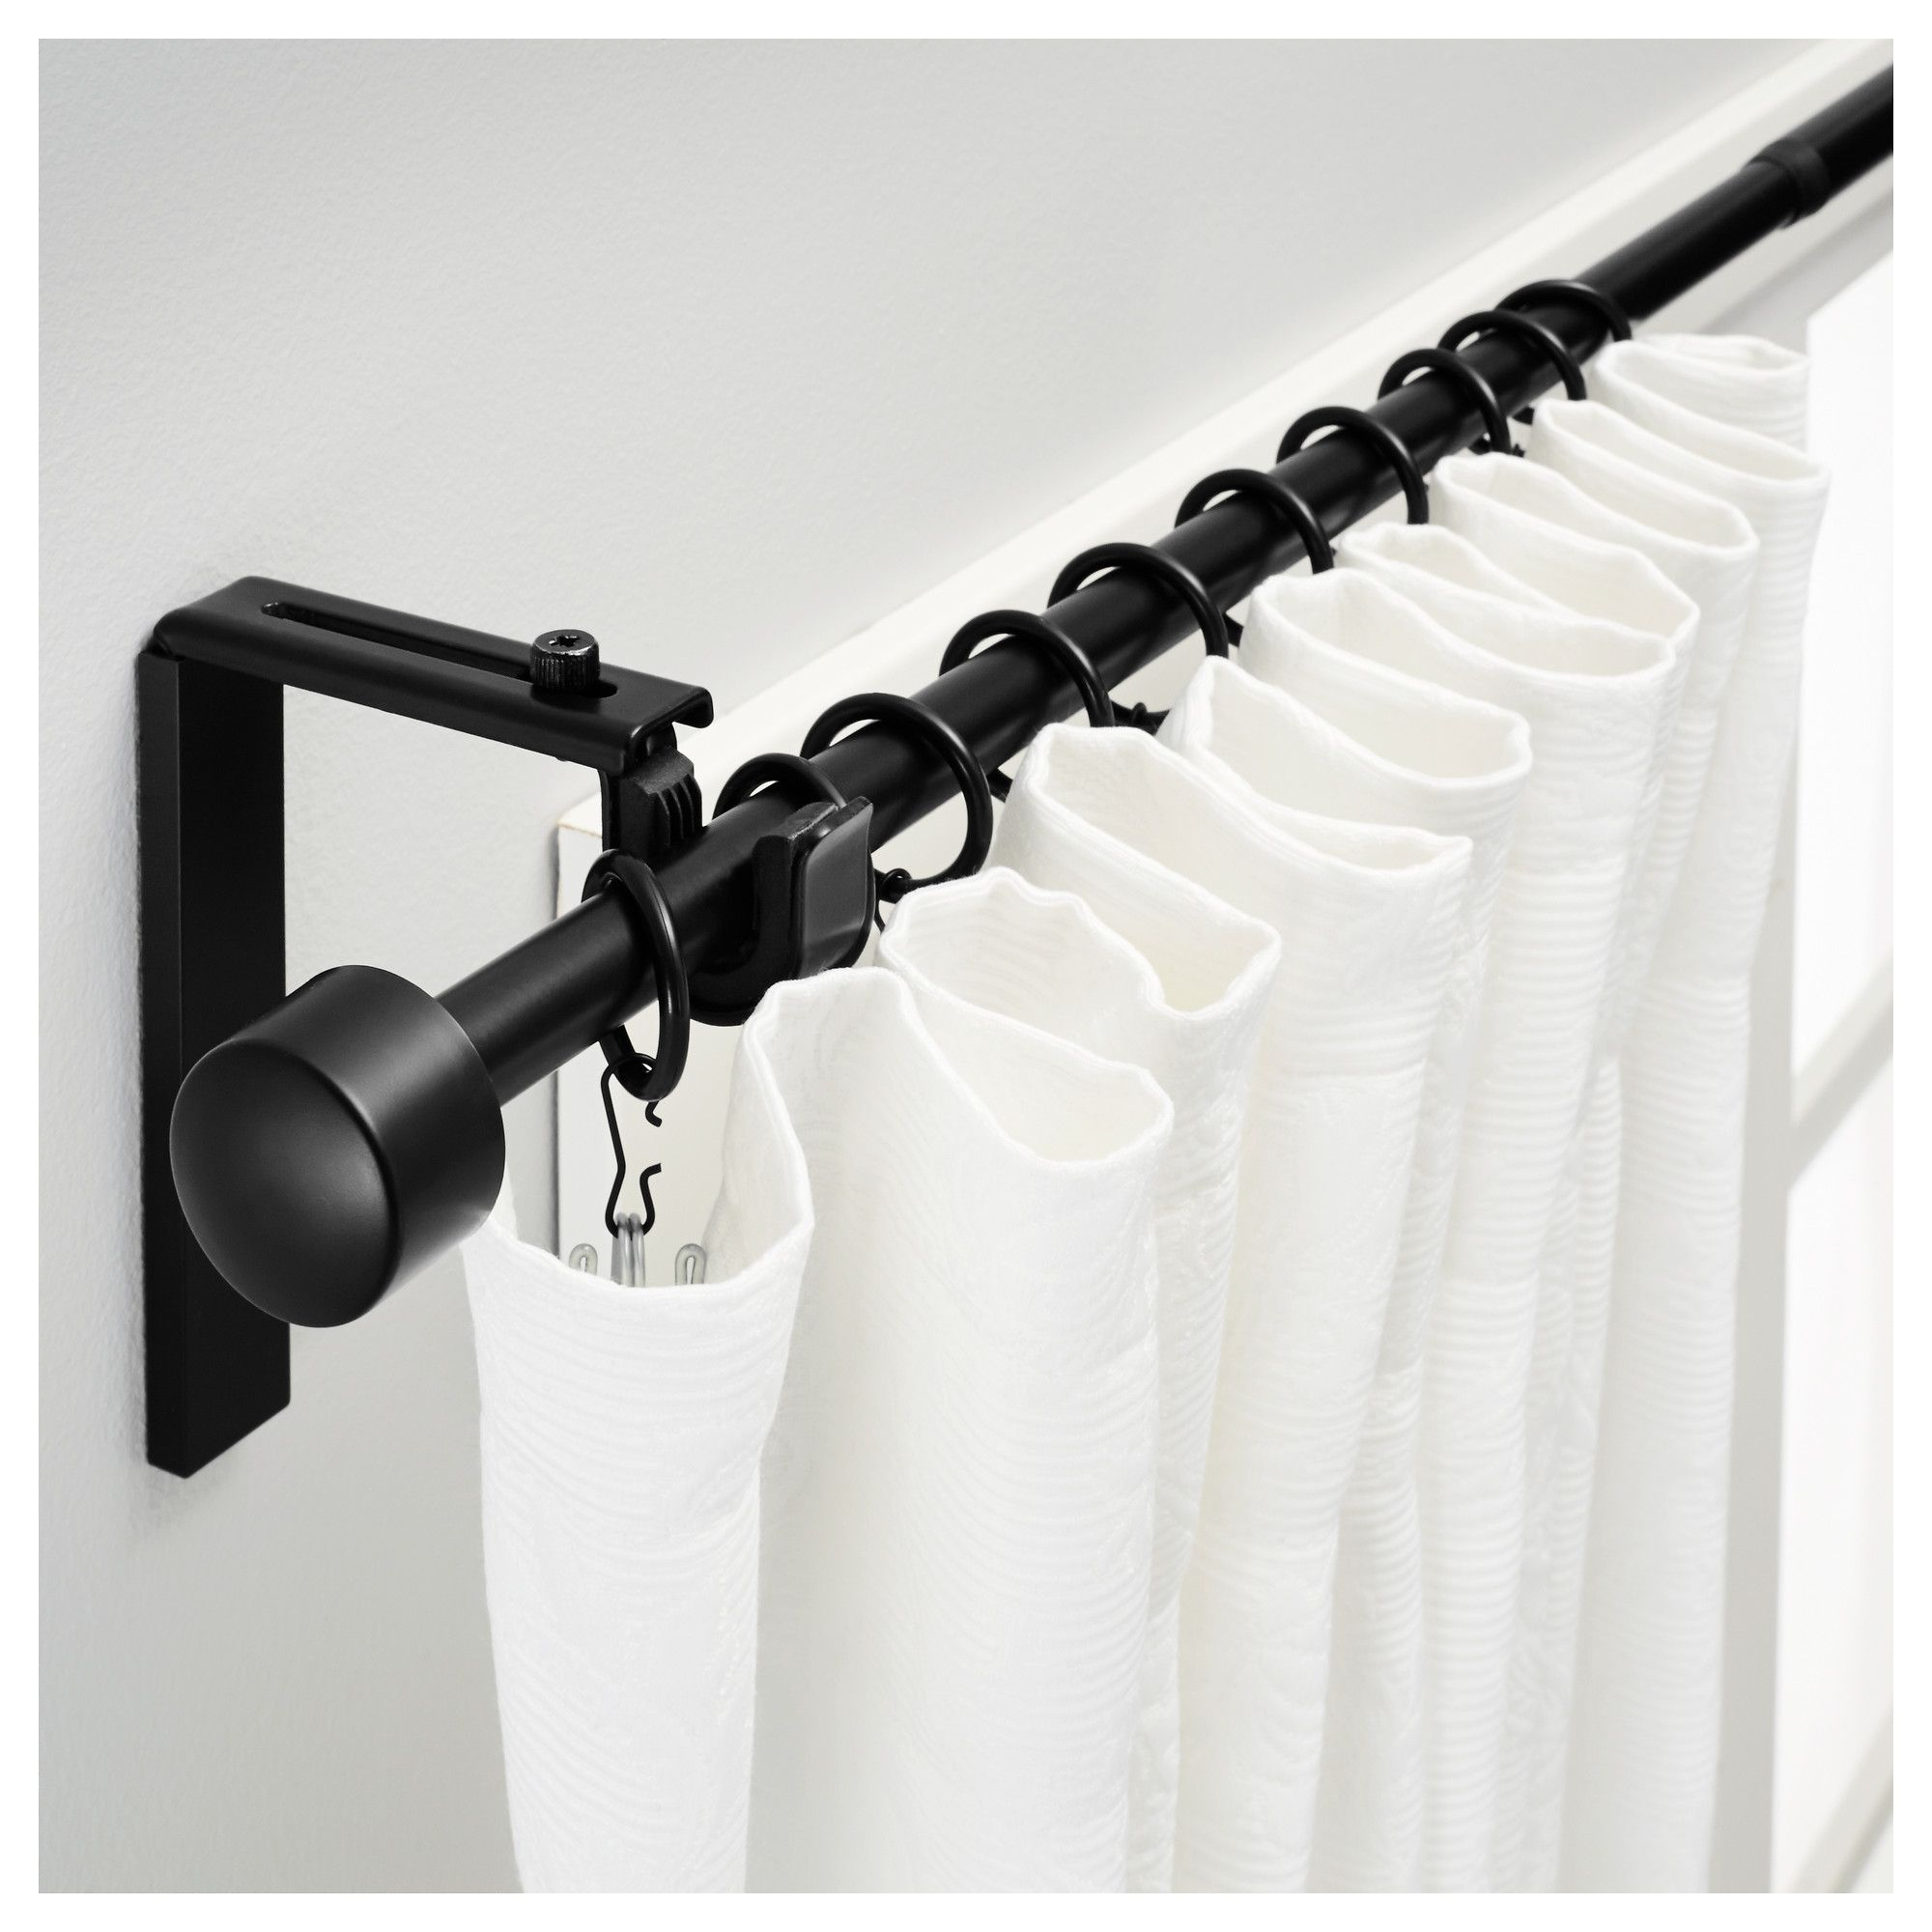 Black Shower Curtain Rod And Rings Black Curtain Rods Curtain